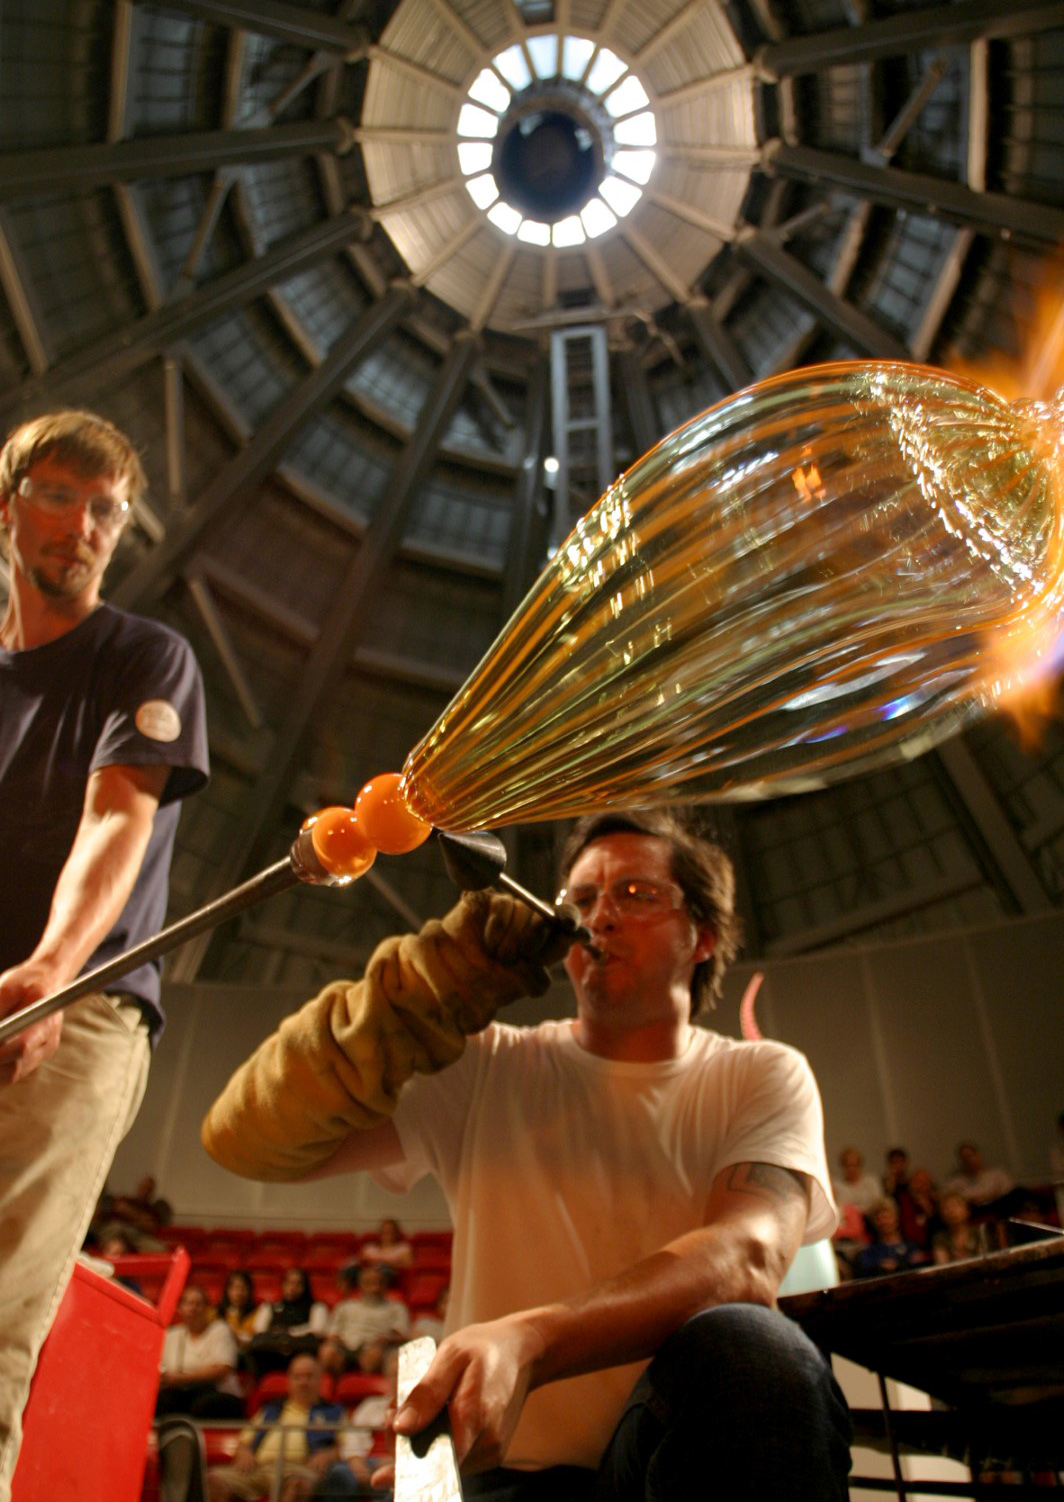 Feel the heat as you watch a team of artists create masterpieces from molten glass in the West Coast's largest Hot Shop—housed inside the iconic 90-foot stainless steel cone at the Museum of Glass. Photo by Mac Donnell.